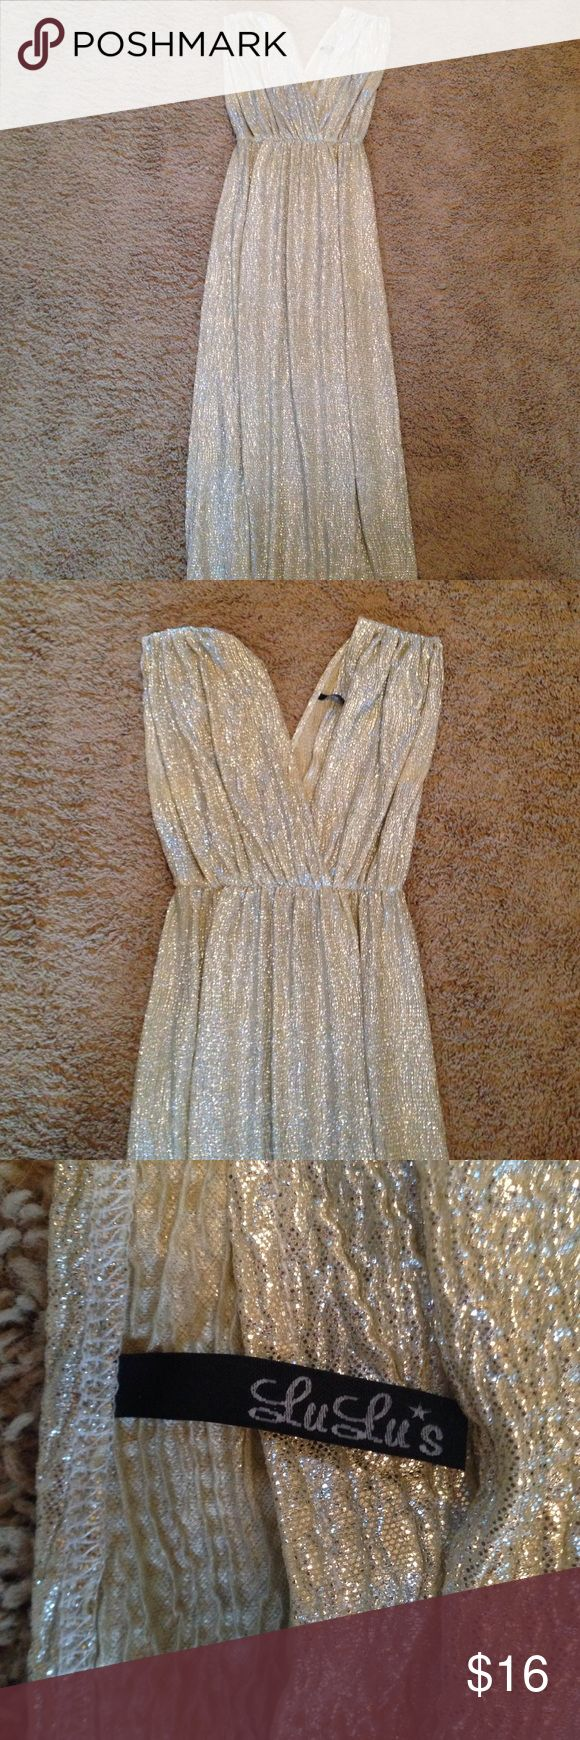 Gold metallic long dress/formal dress This is a Lulus gold sparkley/shimmery metallic gold dress with an elastic waist. Runs large and worn once. There is a little wearing in the color around the arm pit area (last picture) Lulu's Dresses Maxi